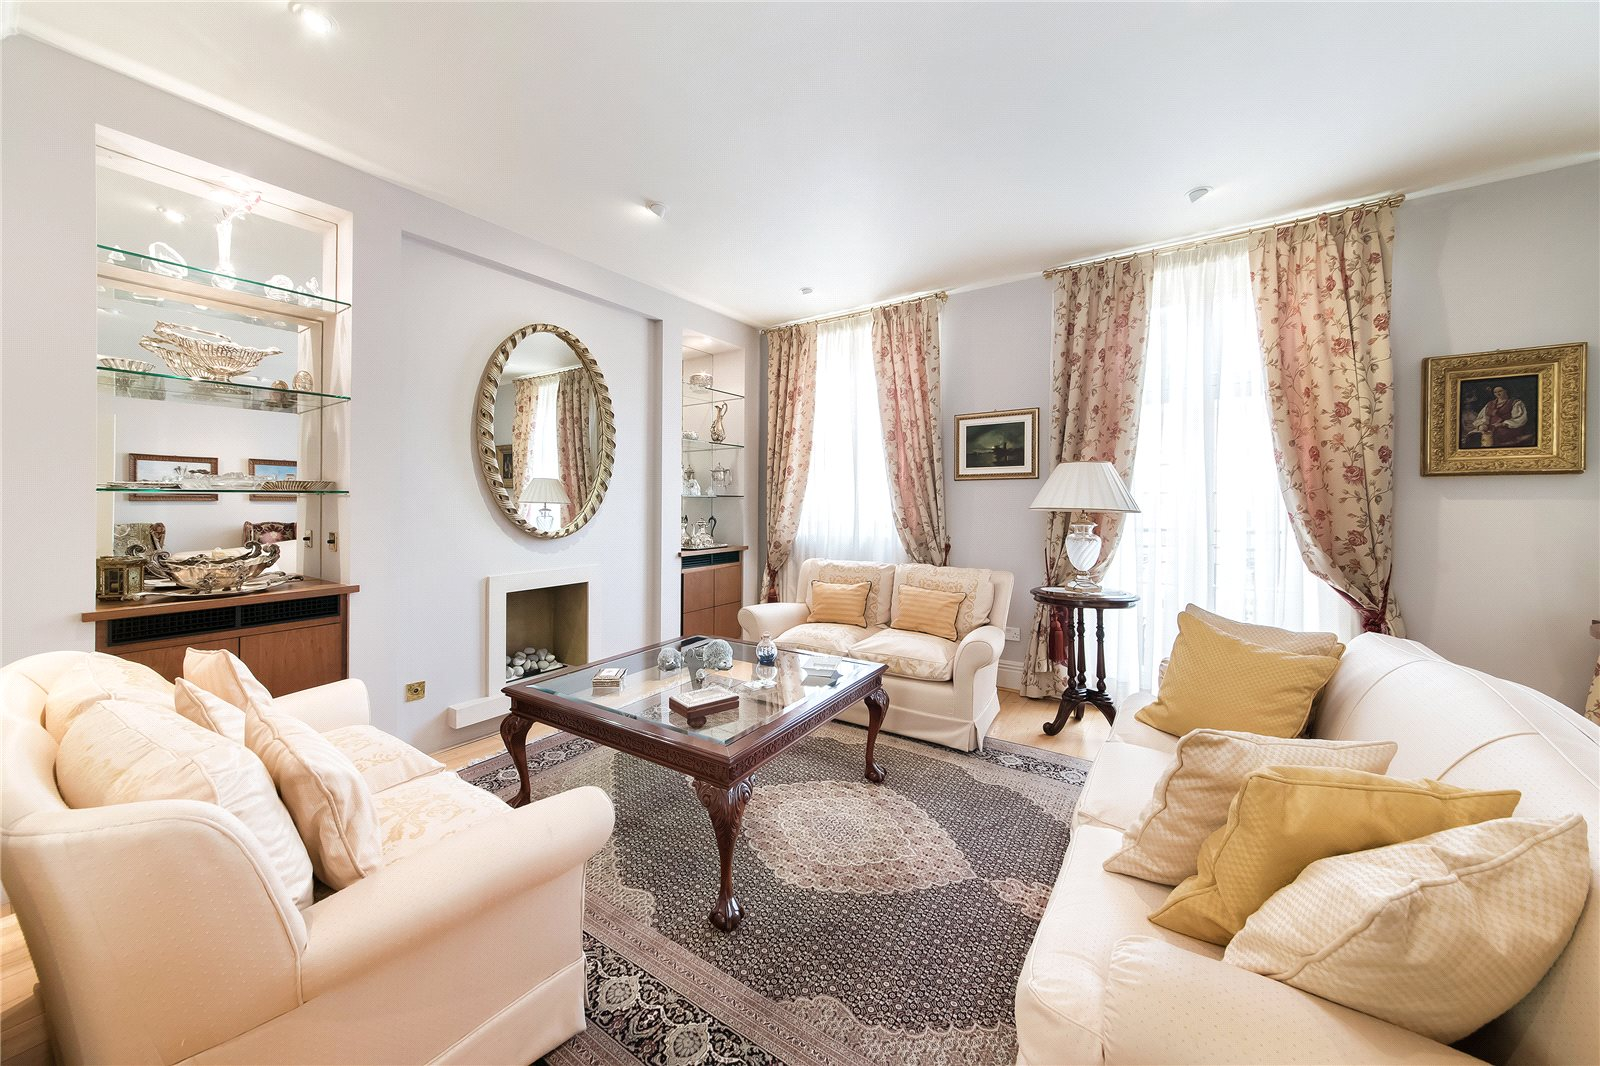 Single Family Home for Sale at Wilton Street, London, SW1X London, England